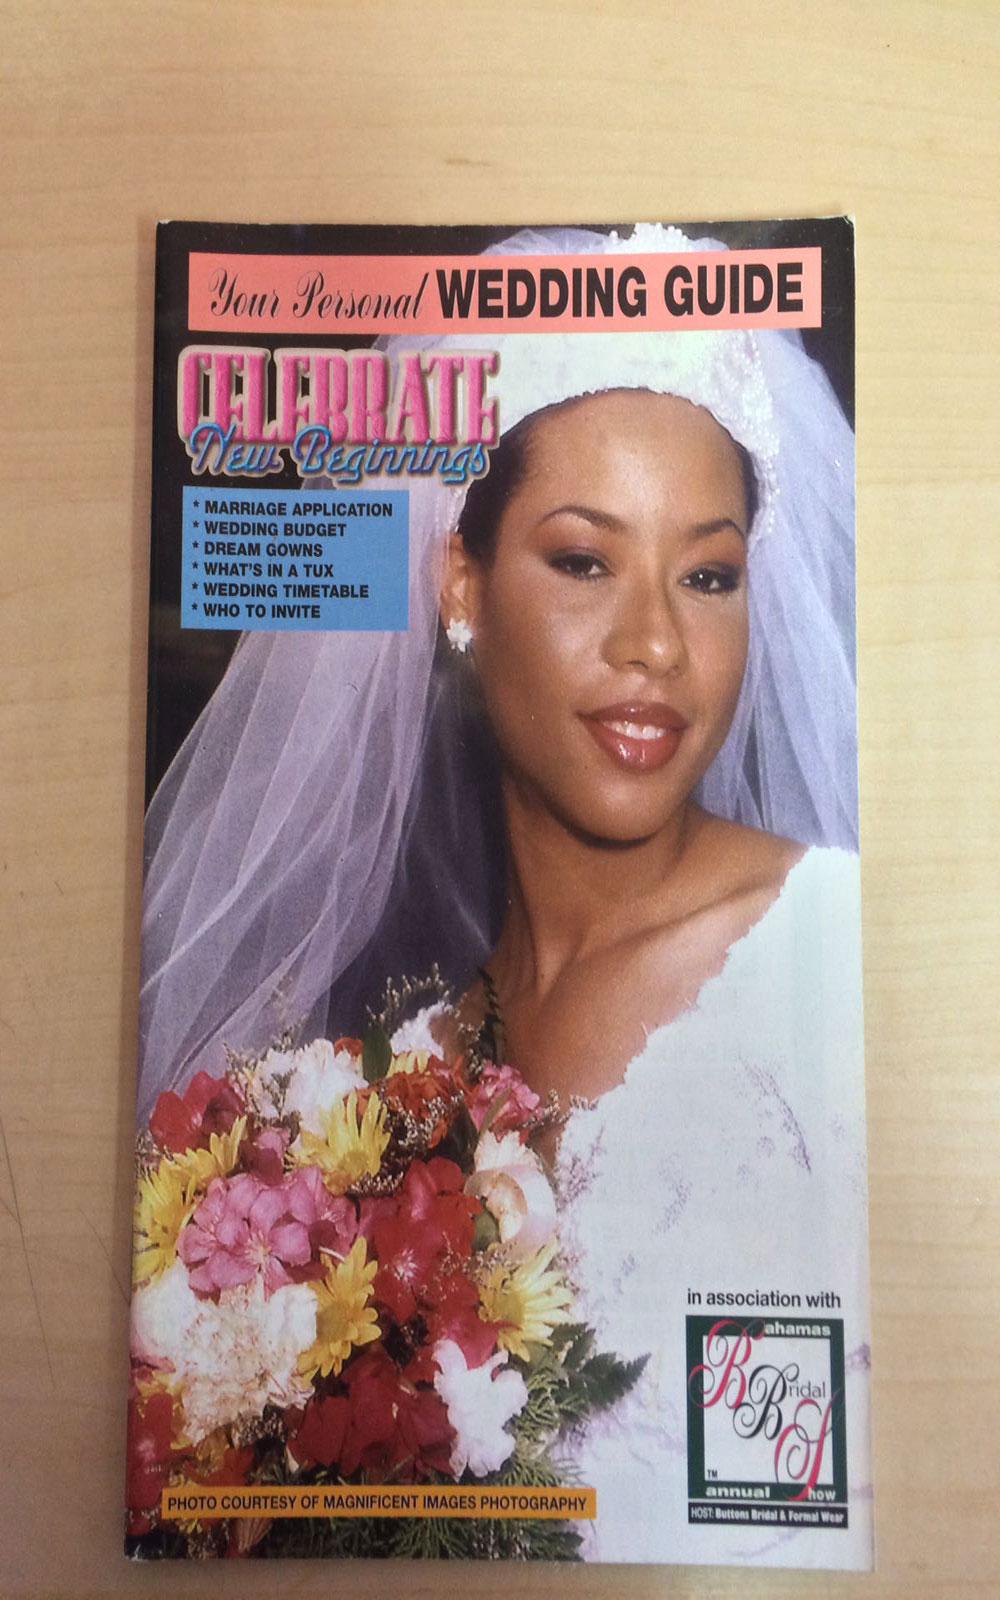 The Wedding Guide 2000-2001